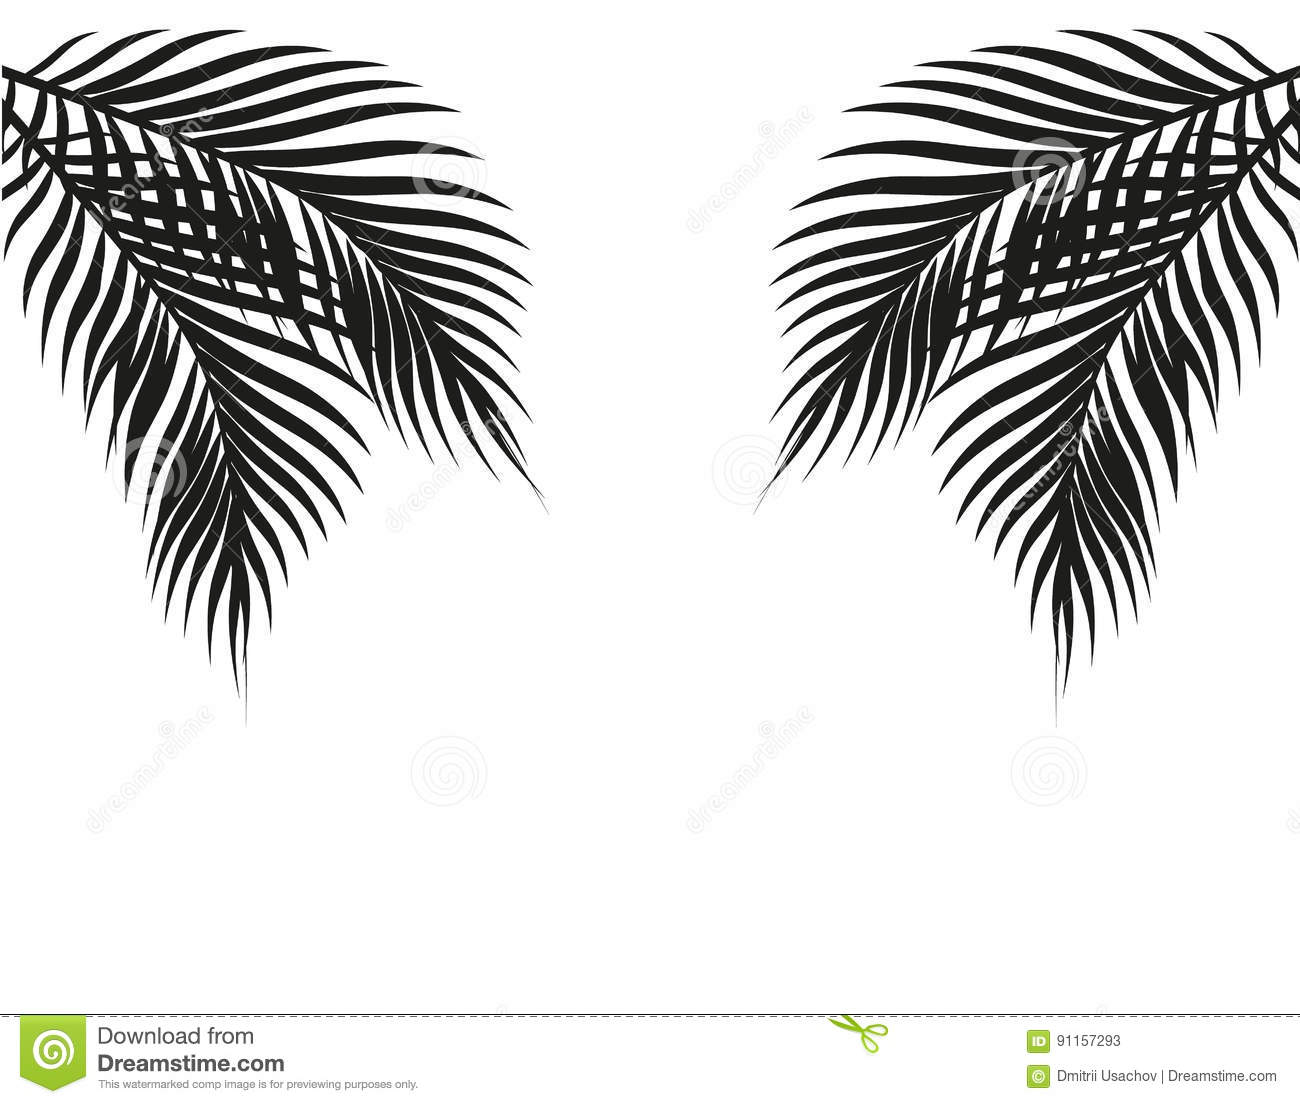 Tropical black and white palm leaves on both sides symmetrical isolated on white background